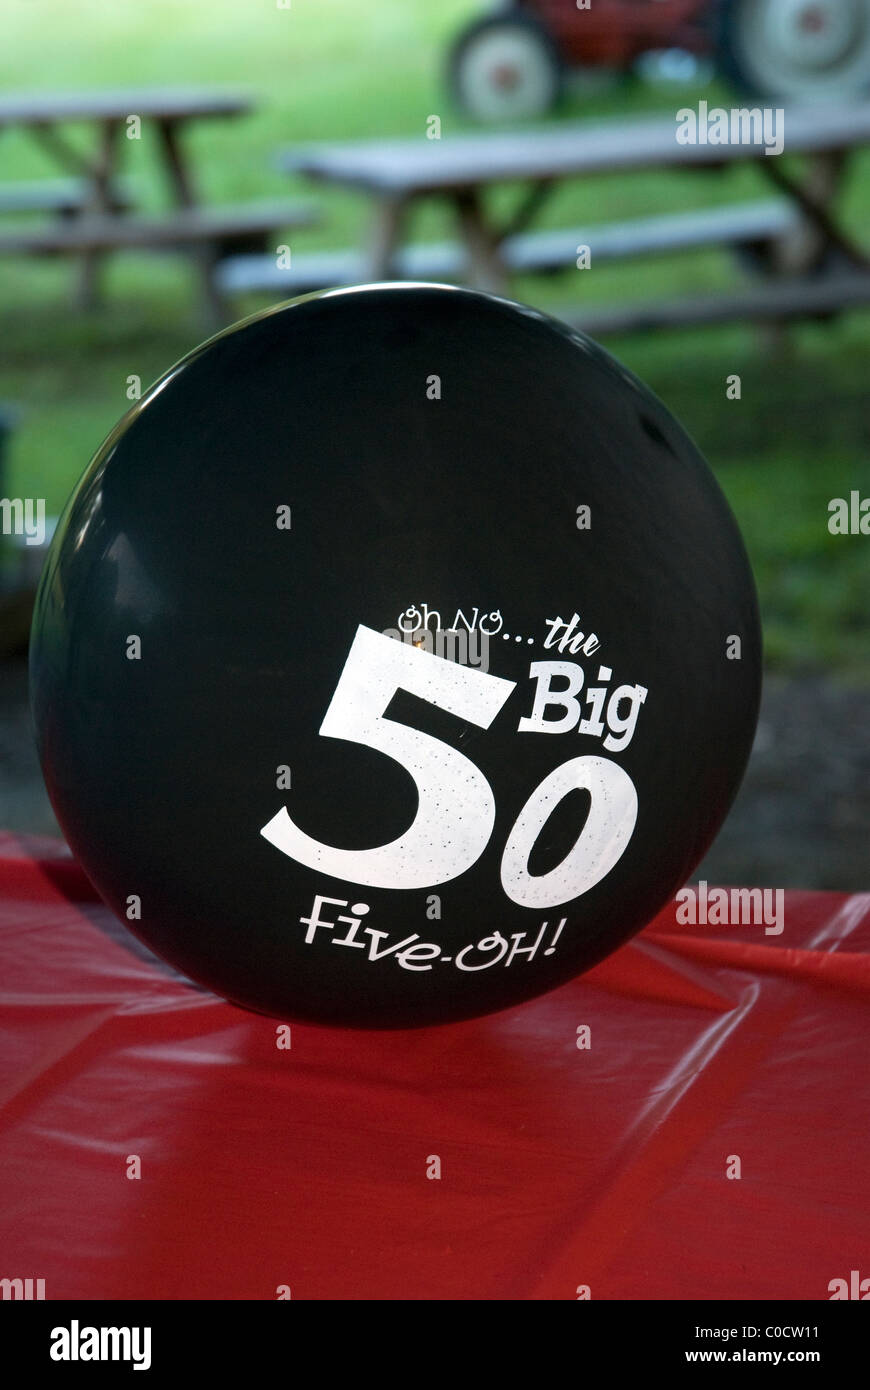 Balloon Decoration For 50th Birthday Celebration